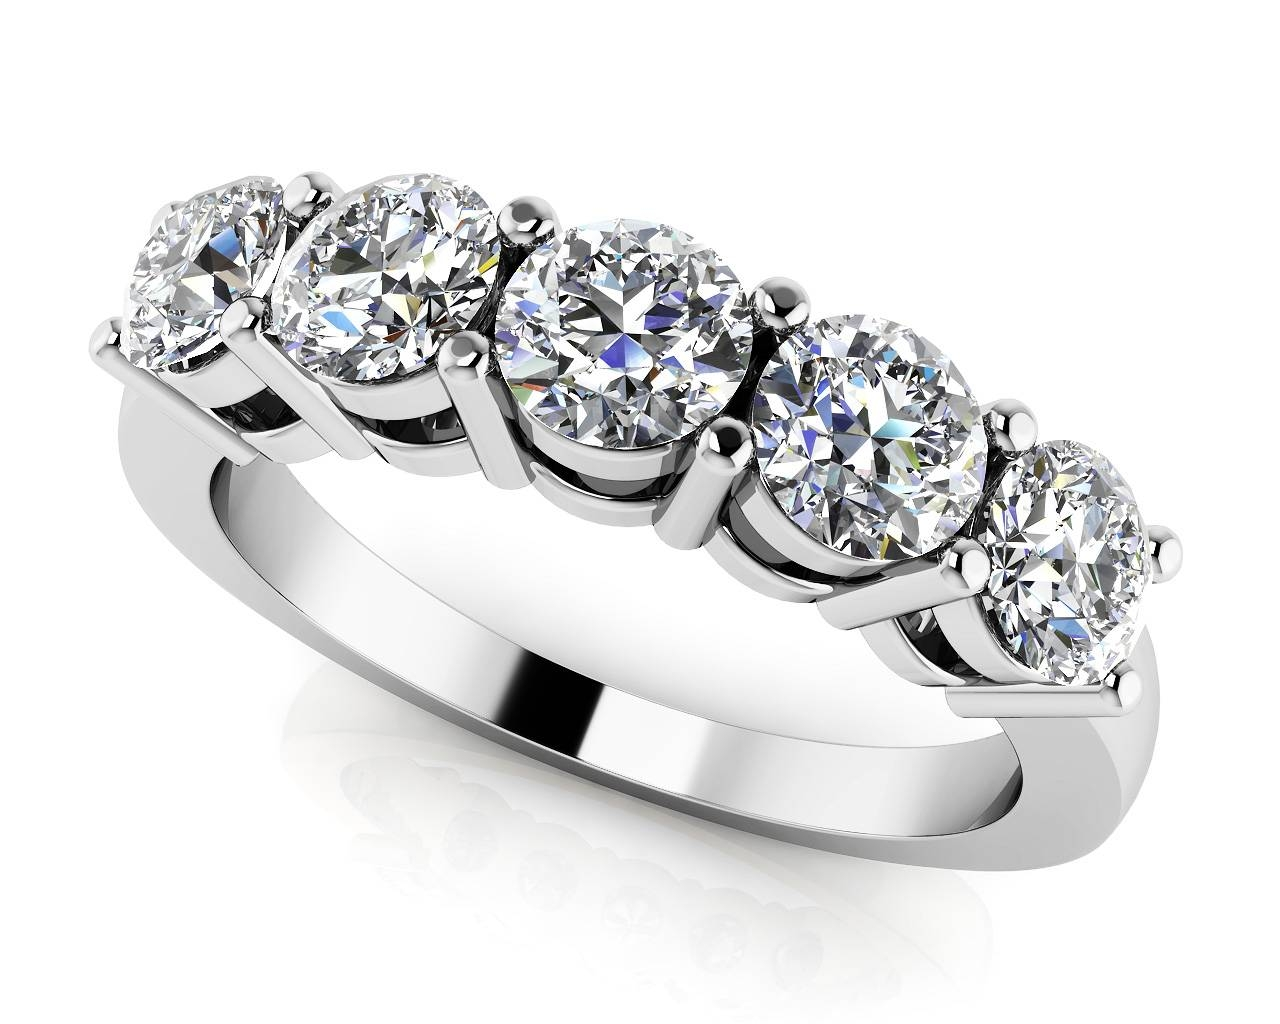 Design Your Own Diamond Anniversary Ring & Eternity Ring In Most Popular Anniversary Rings For Couples (View 13 of 25)